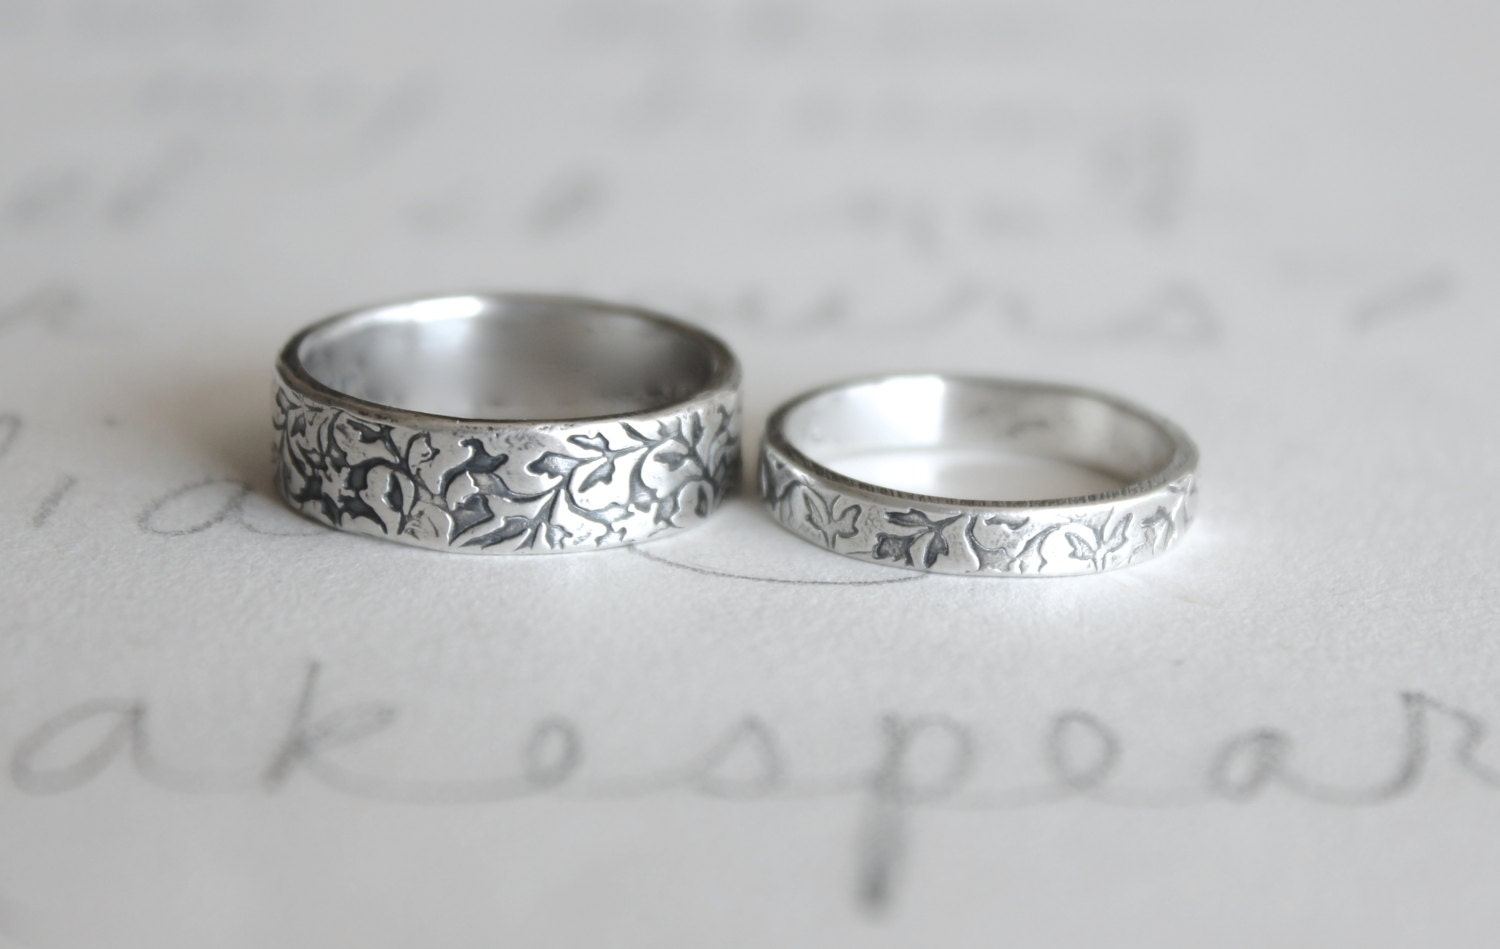 Wedding band ring set vine leaf wedding rings bands for Wedding rings bands